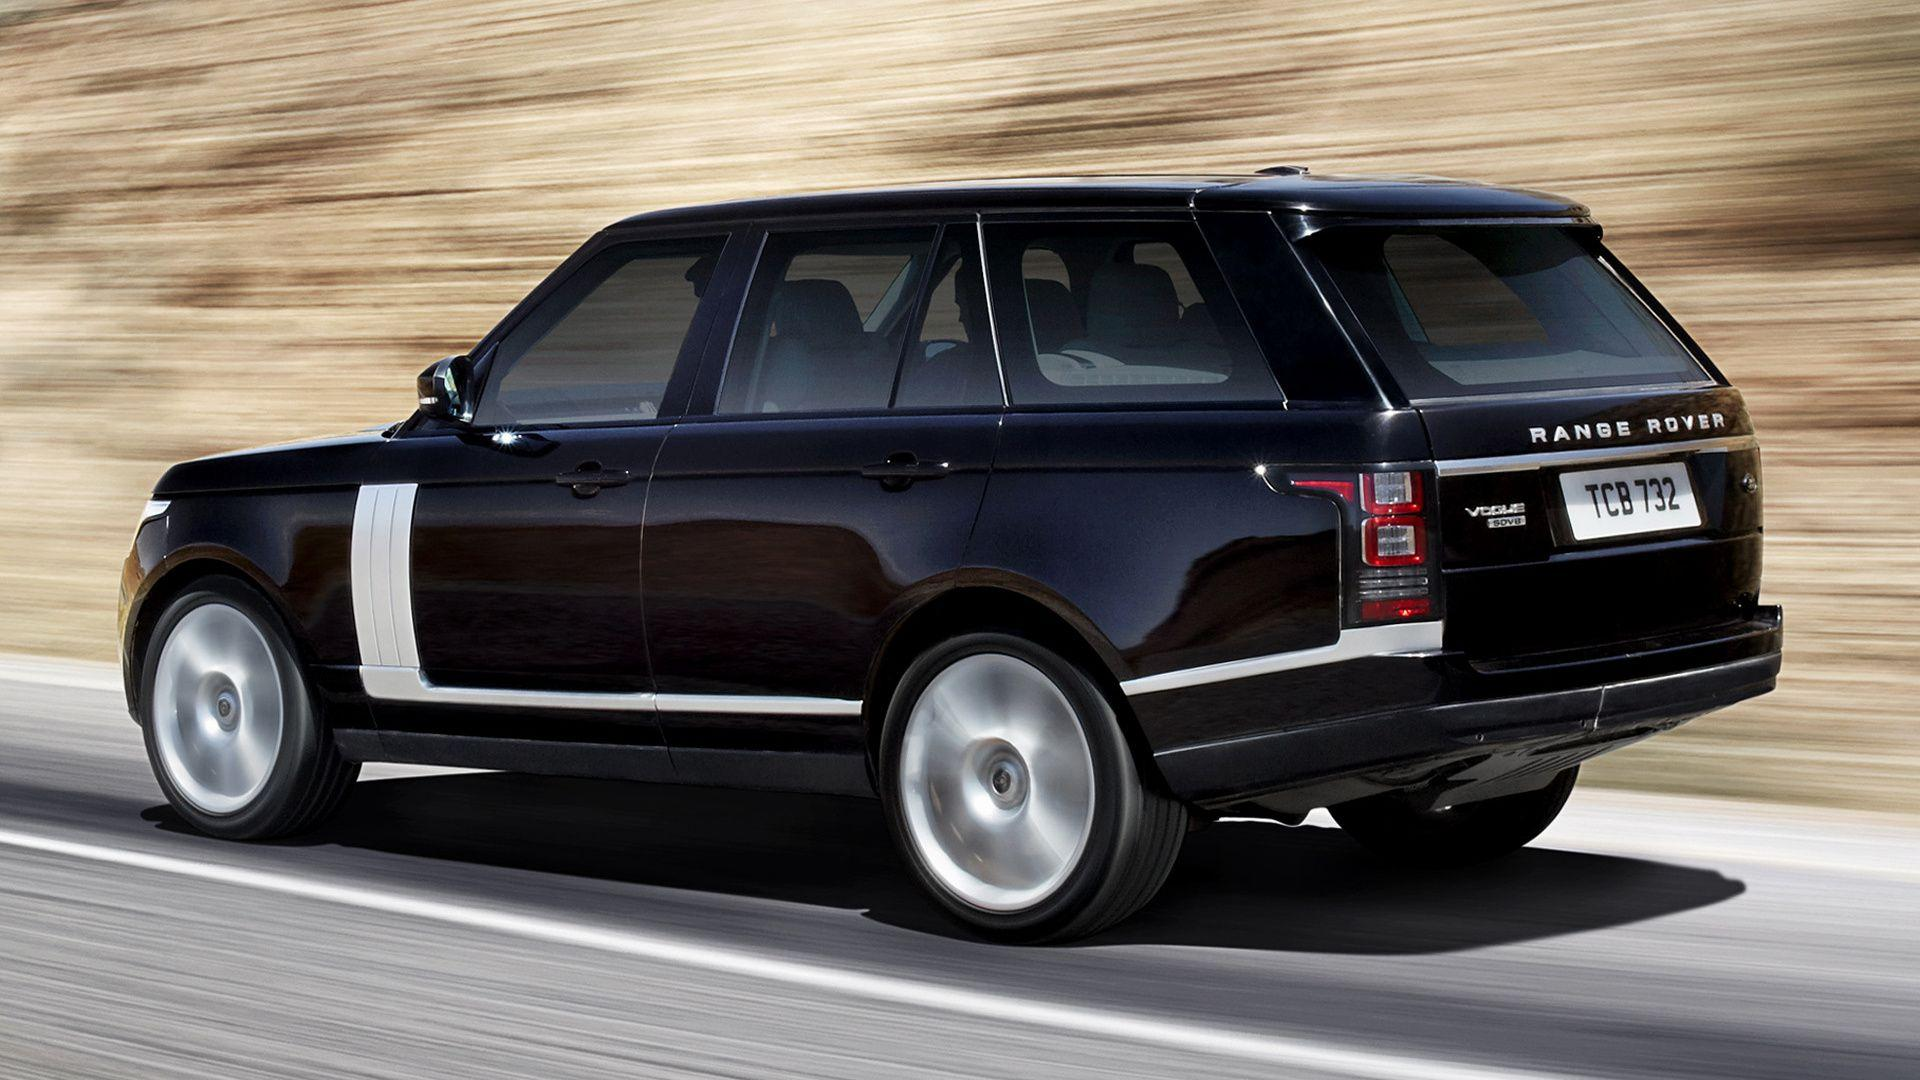 Range Rover Vogue Wallpapers Wallpaper Cave